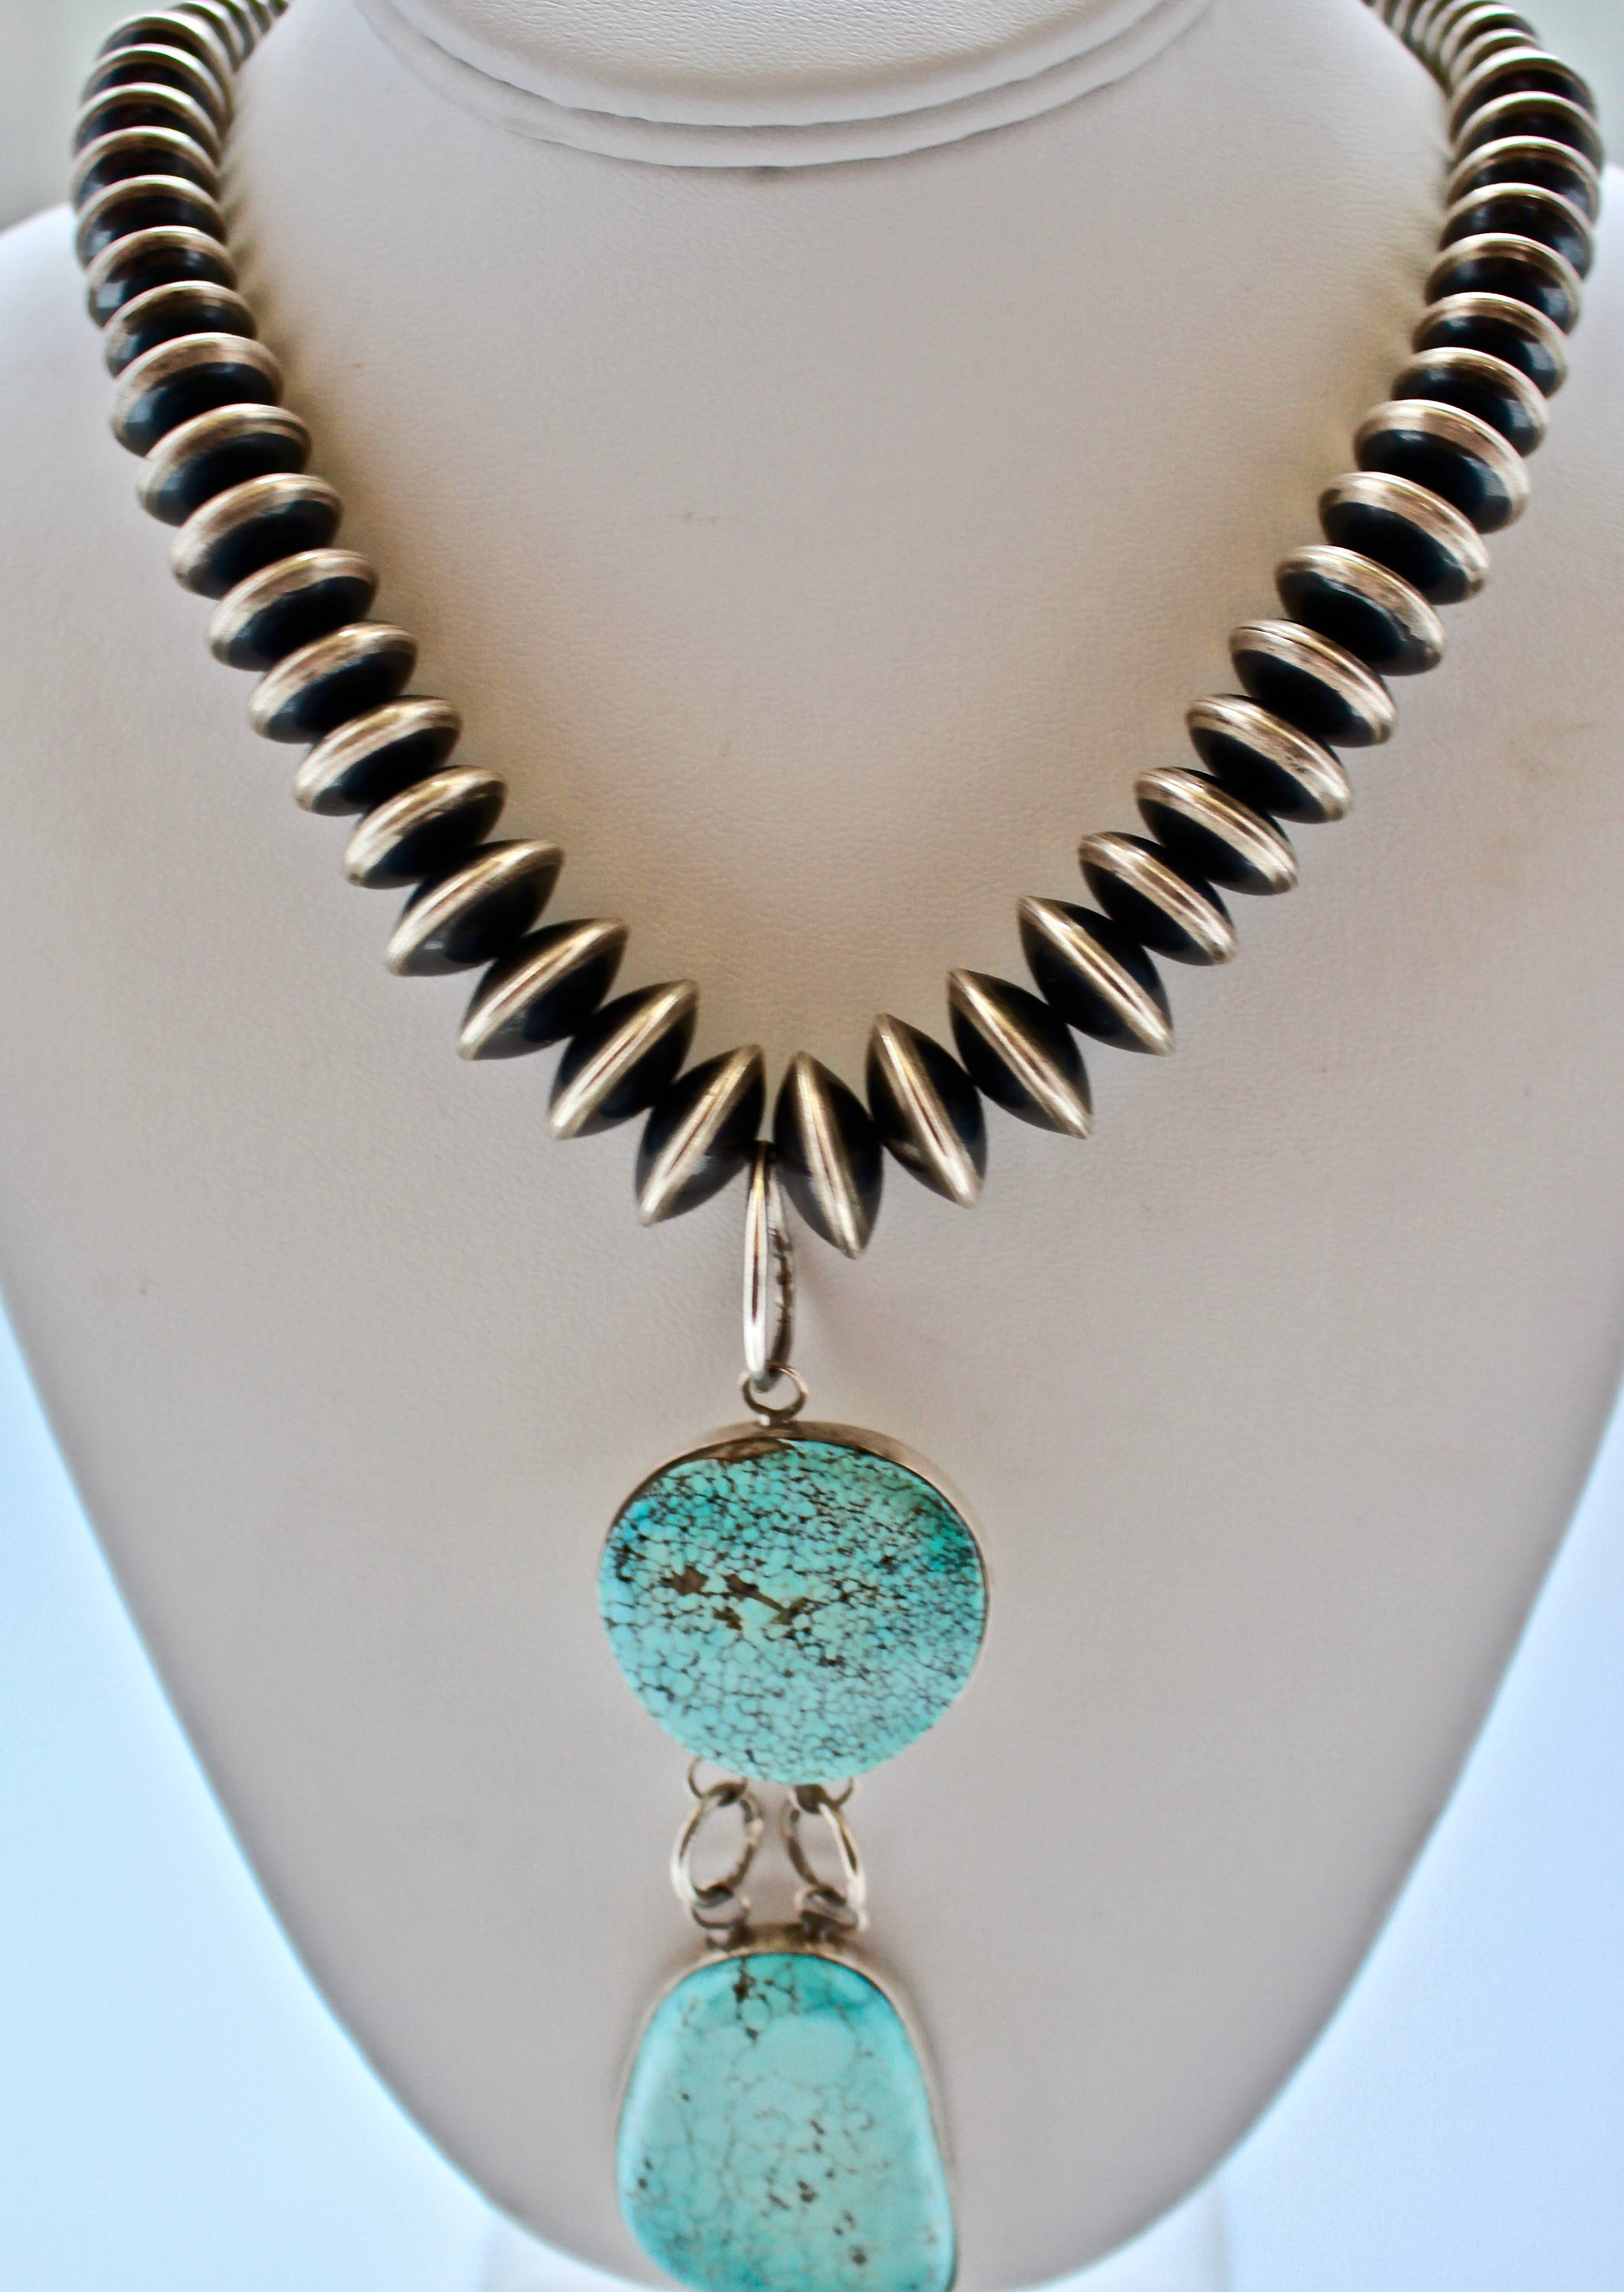 long far life by herbert taylor products pendant navajo necklace ago away